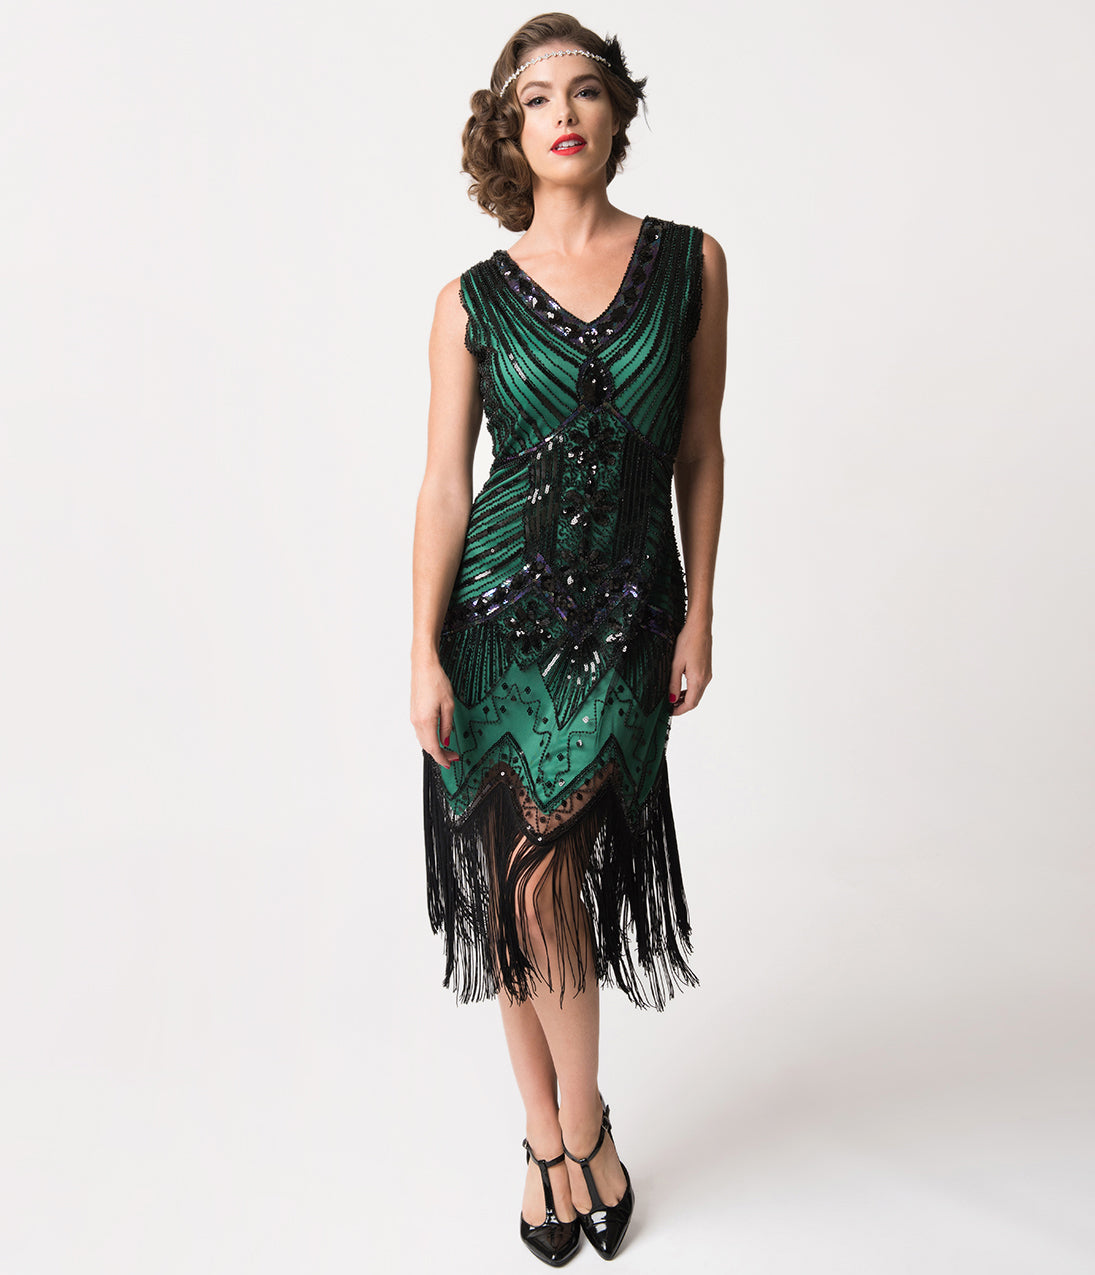 20s Dresses | 1920s Dresses for Sale Unique Vintage 1920S Deco Green  Black Sequin Veronique Fringe Flapper Dress $98.00 AT vintagedancer.com